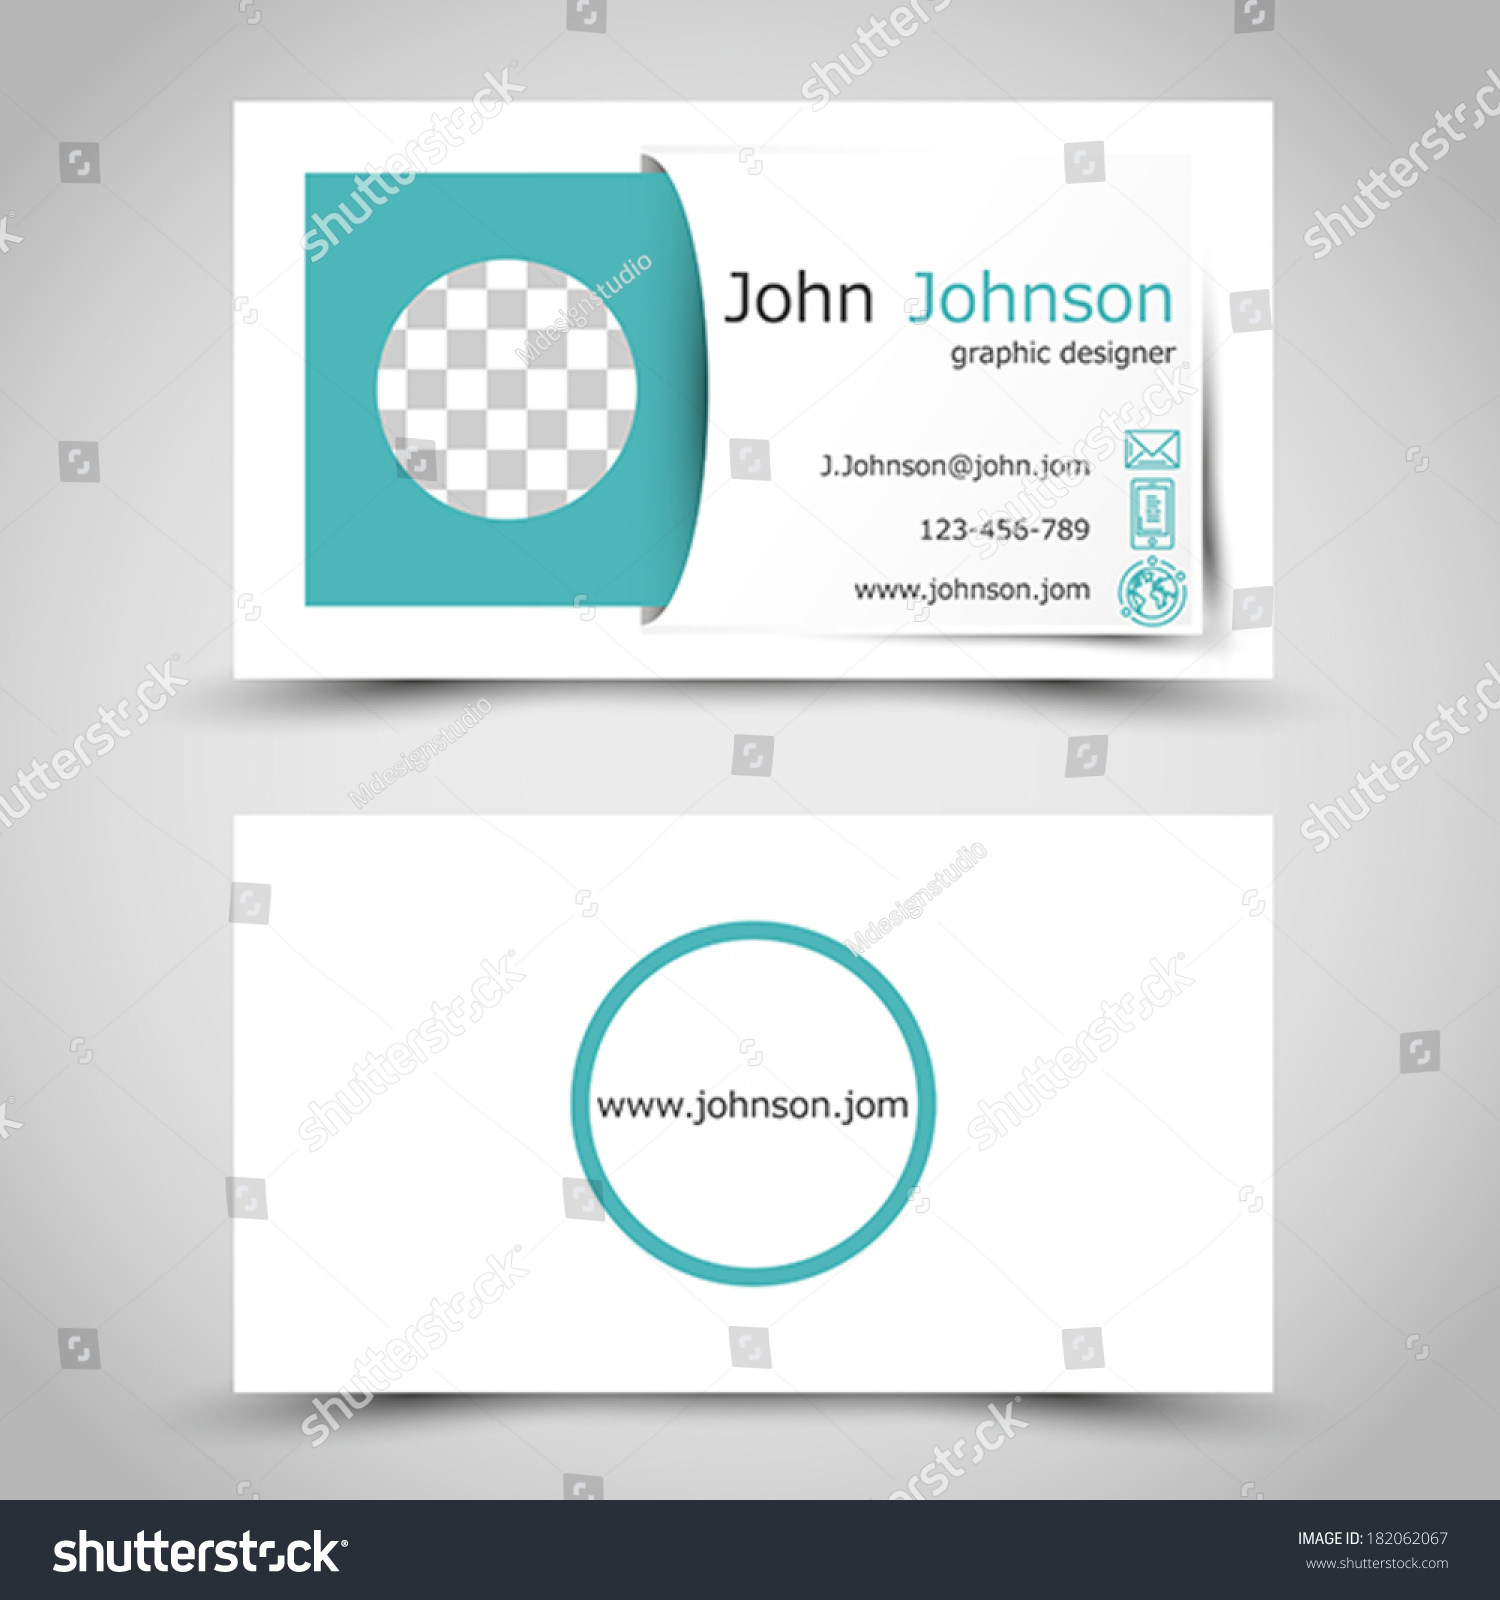 Modern Turquoise Business Card Sticker Photo Stock Vector ...